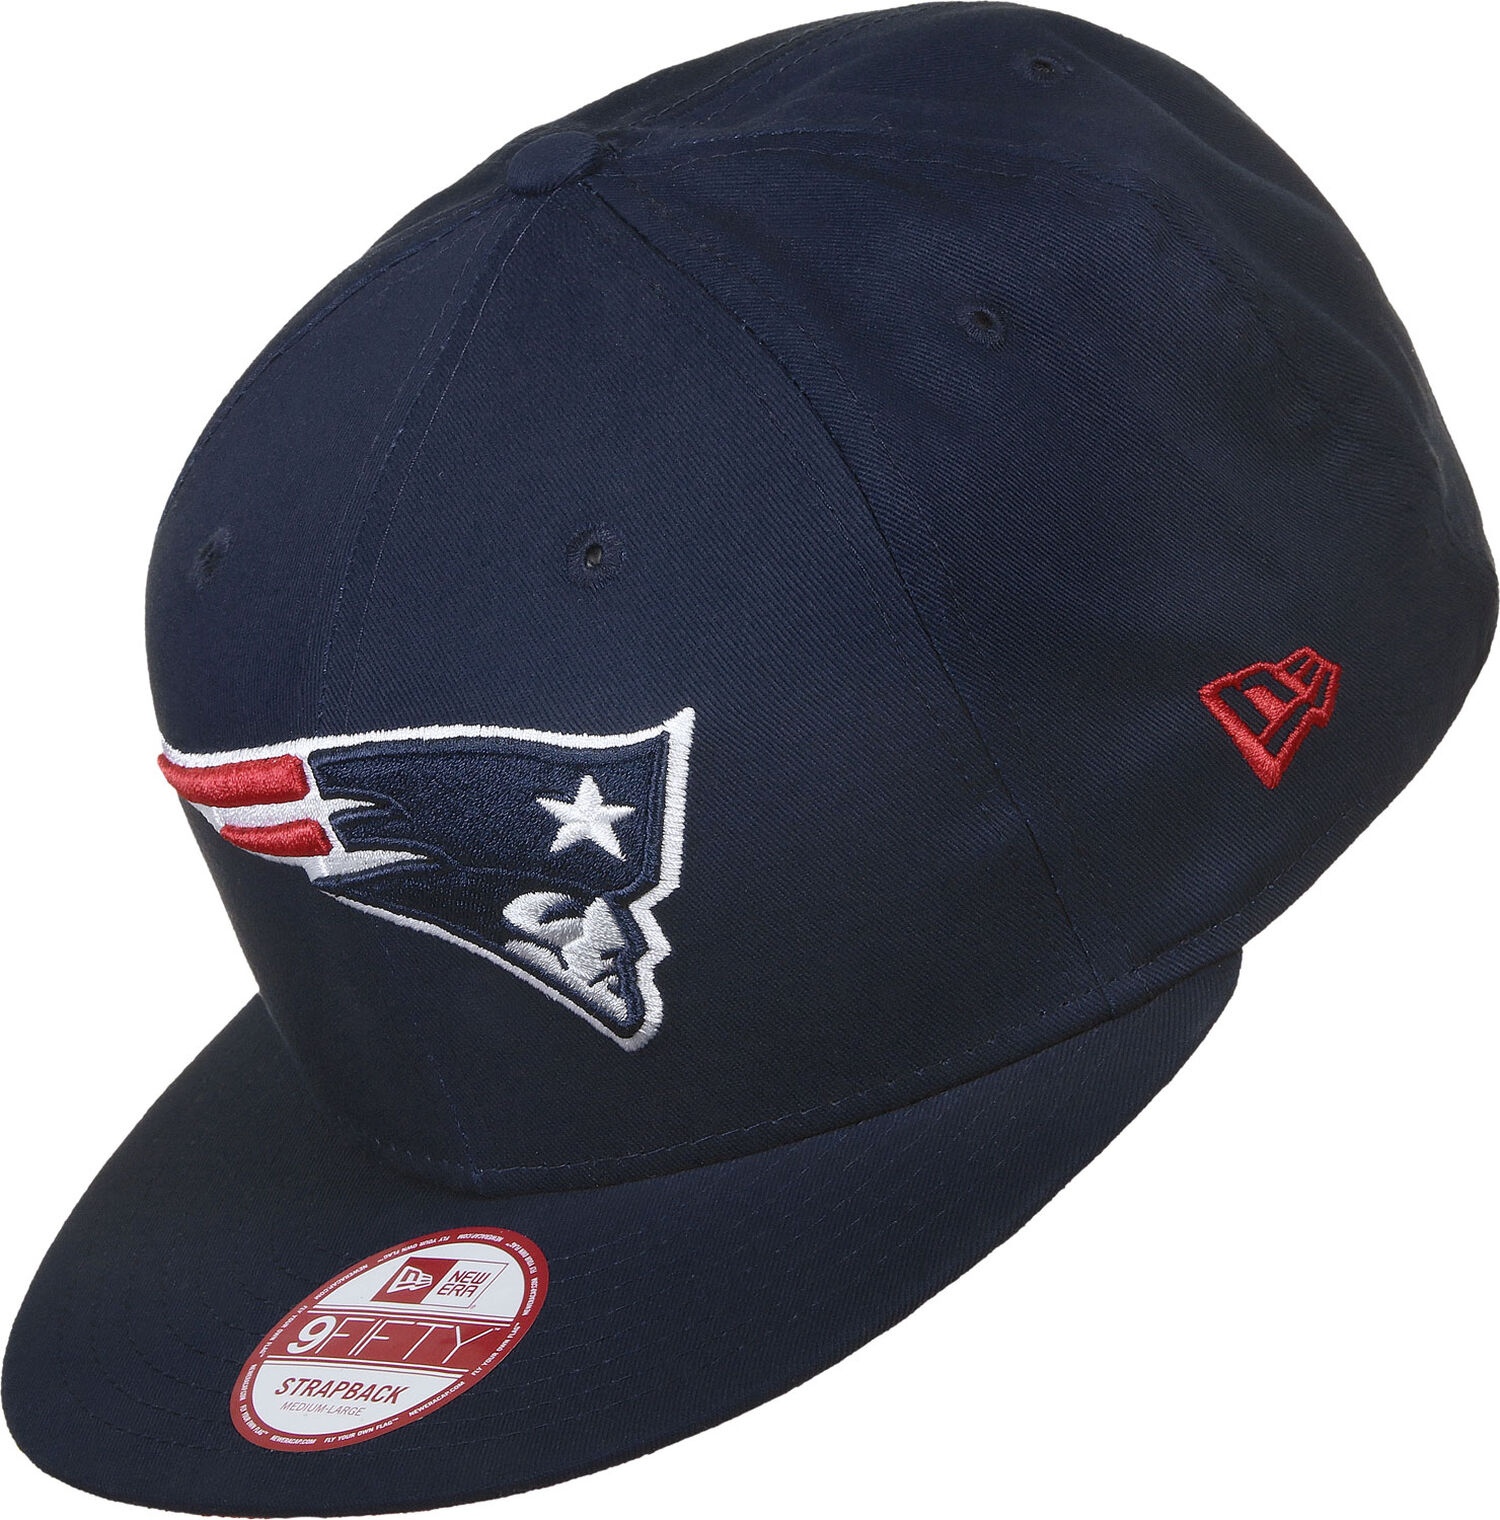 NFL Team New England Patriots